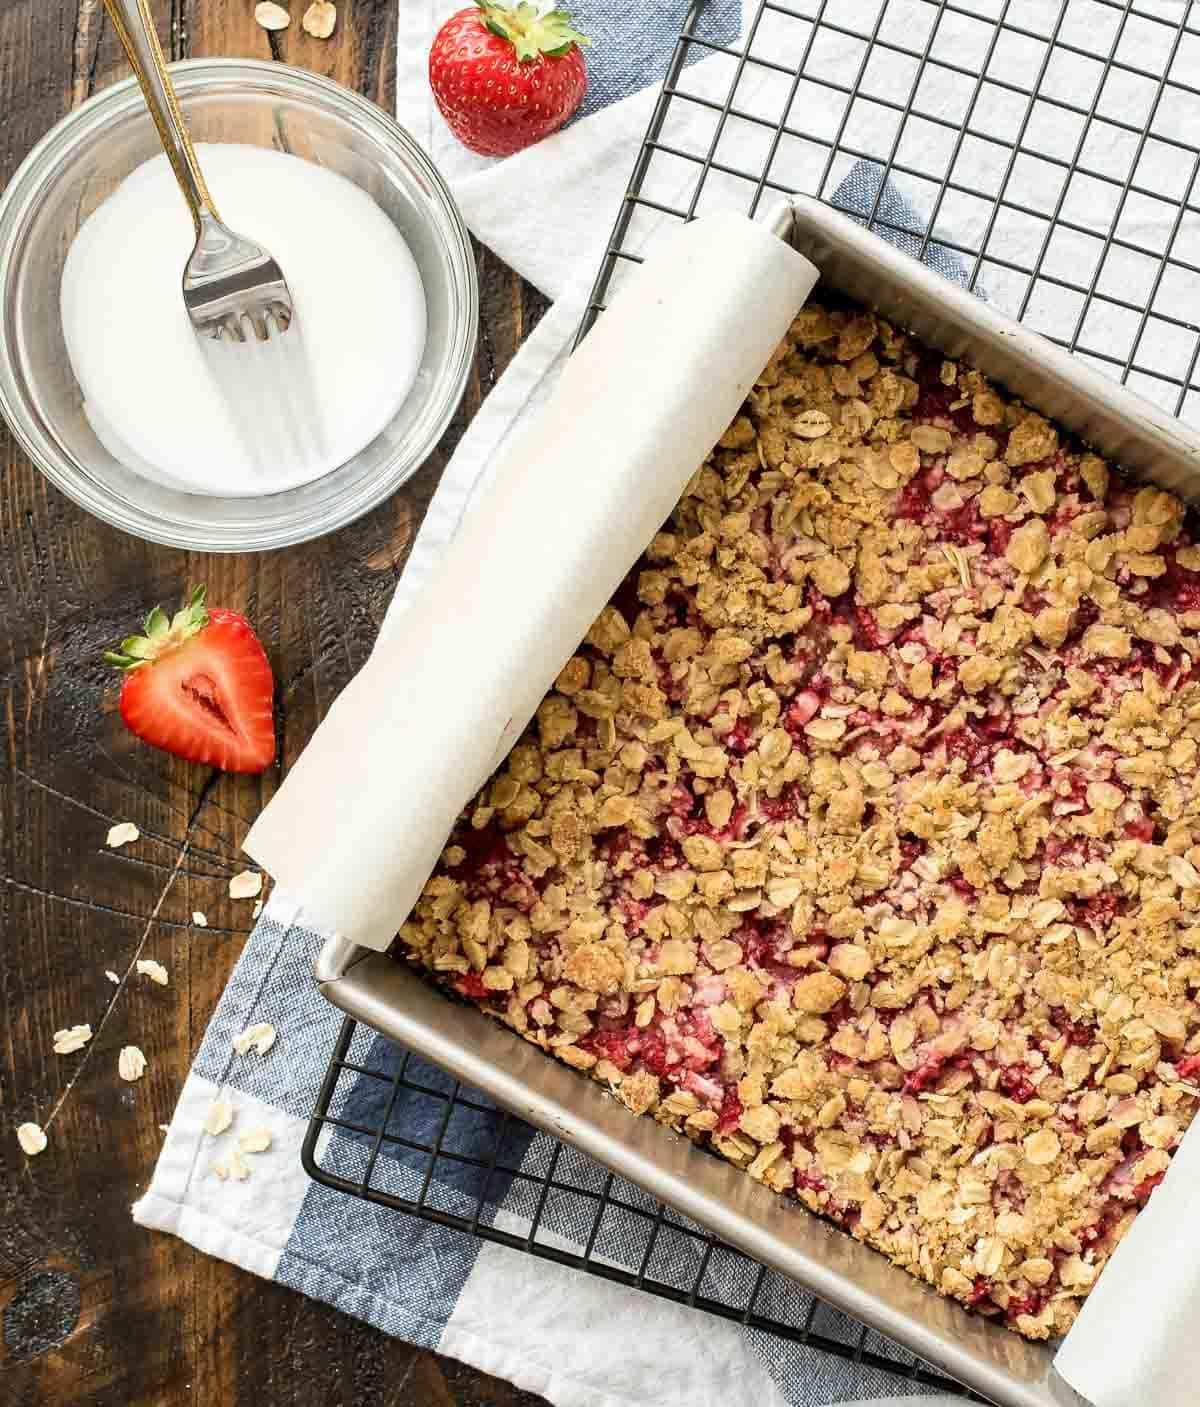 Strawberry Crumb Bars recipe — with a buttery crust, sweet fresh strawberry filling, butter crumb topping, and vanilla glaze, these bars have it all and are so easy! Made with 100% whole grain and the natural sweetness of strawberries, they are healthy enough for a snack but make a wonderful dessert bar for a party or picnic too! @wellplated